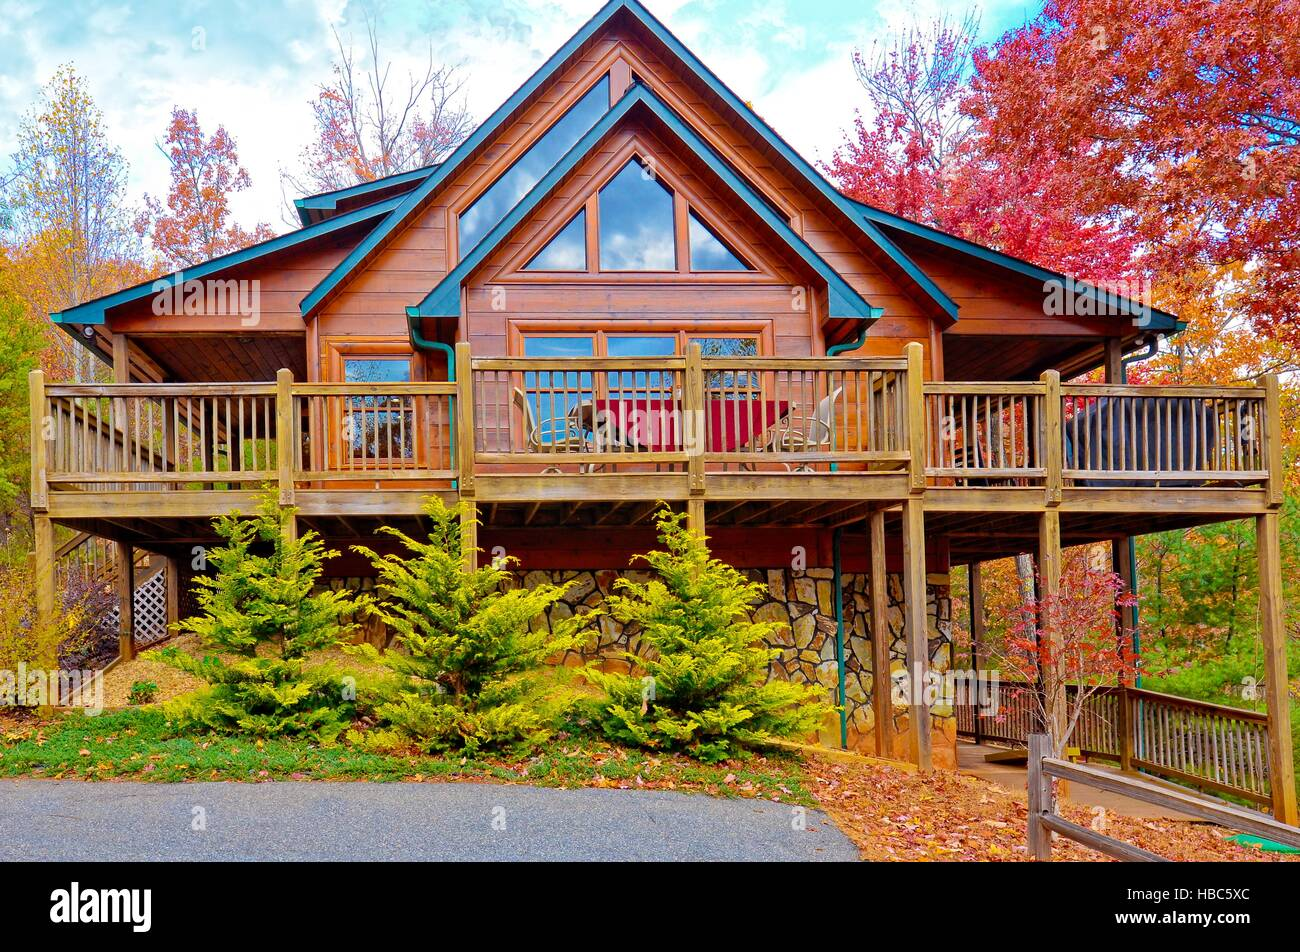 Log house with decks for entertainment surrounded by the colors of autumn. - Stock Image